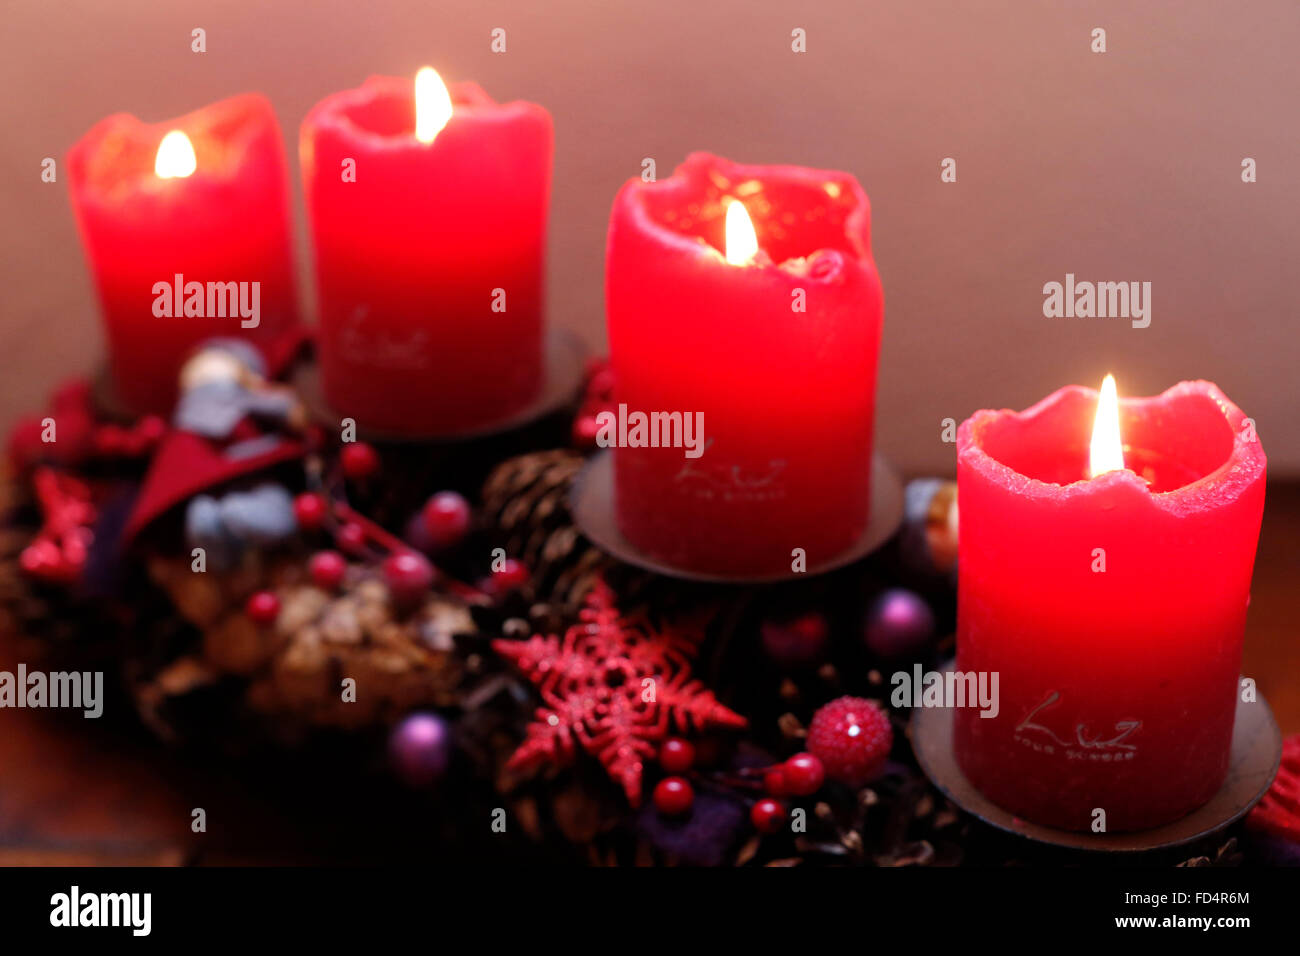 Advent wreath with candles. - Stock Image